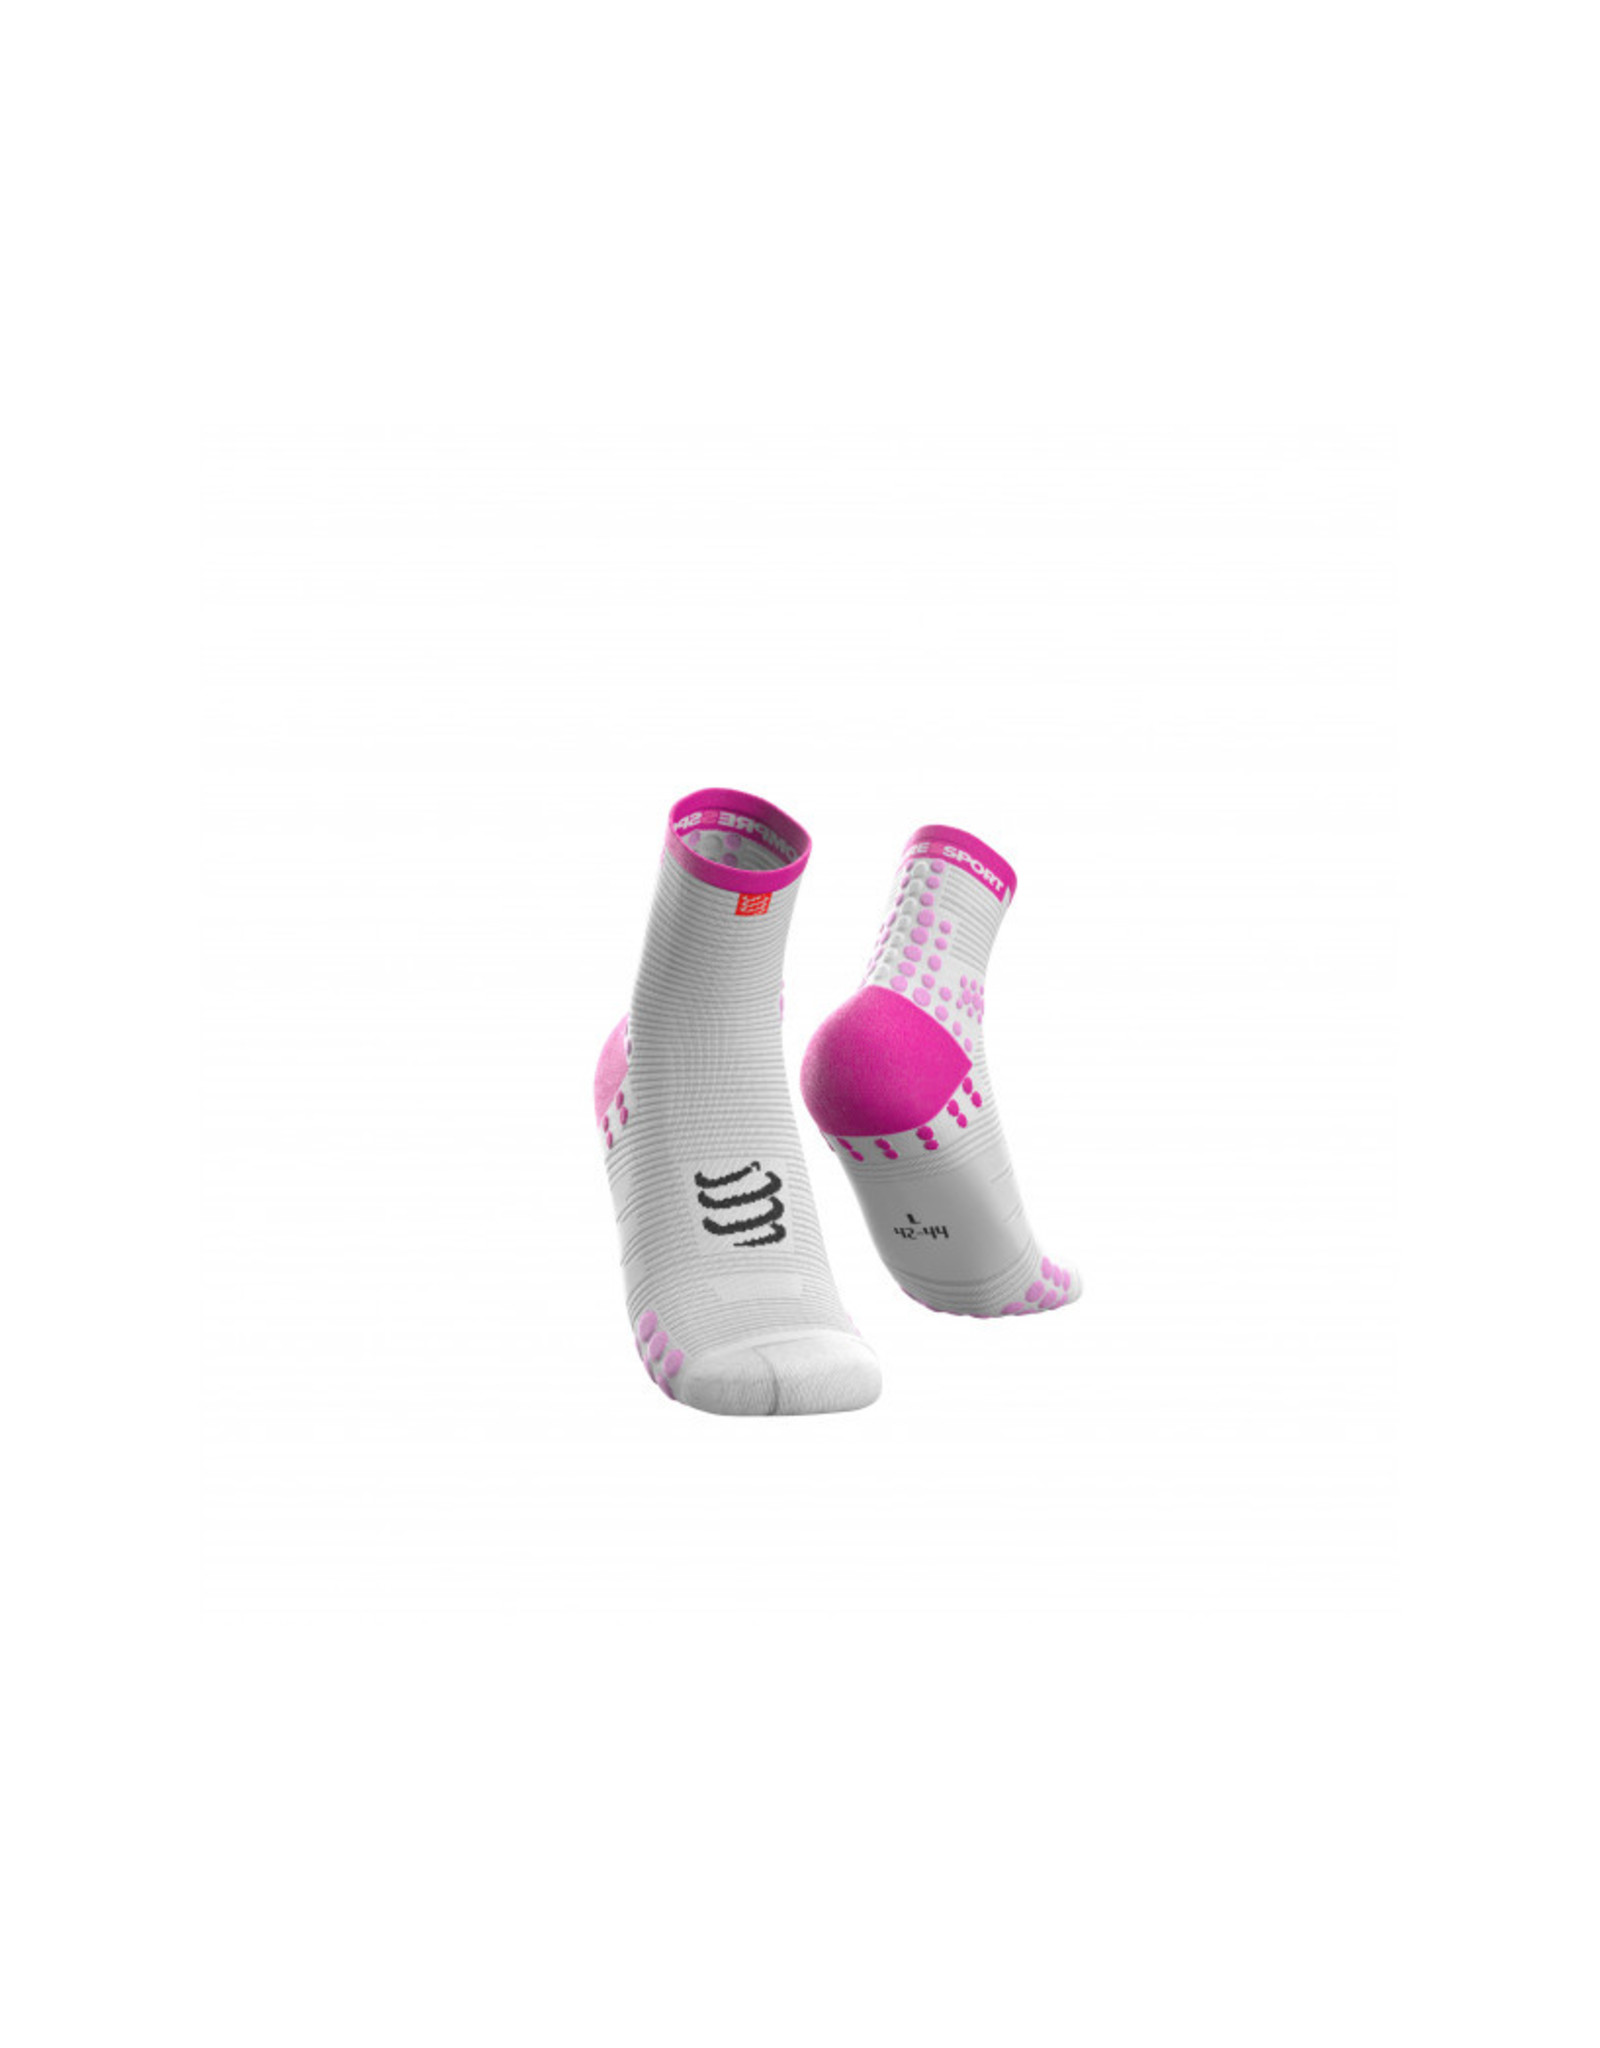 Compressport Pro Racing Socks V3.0 Run High Hardloopsokken Hoog - Wit/Roze